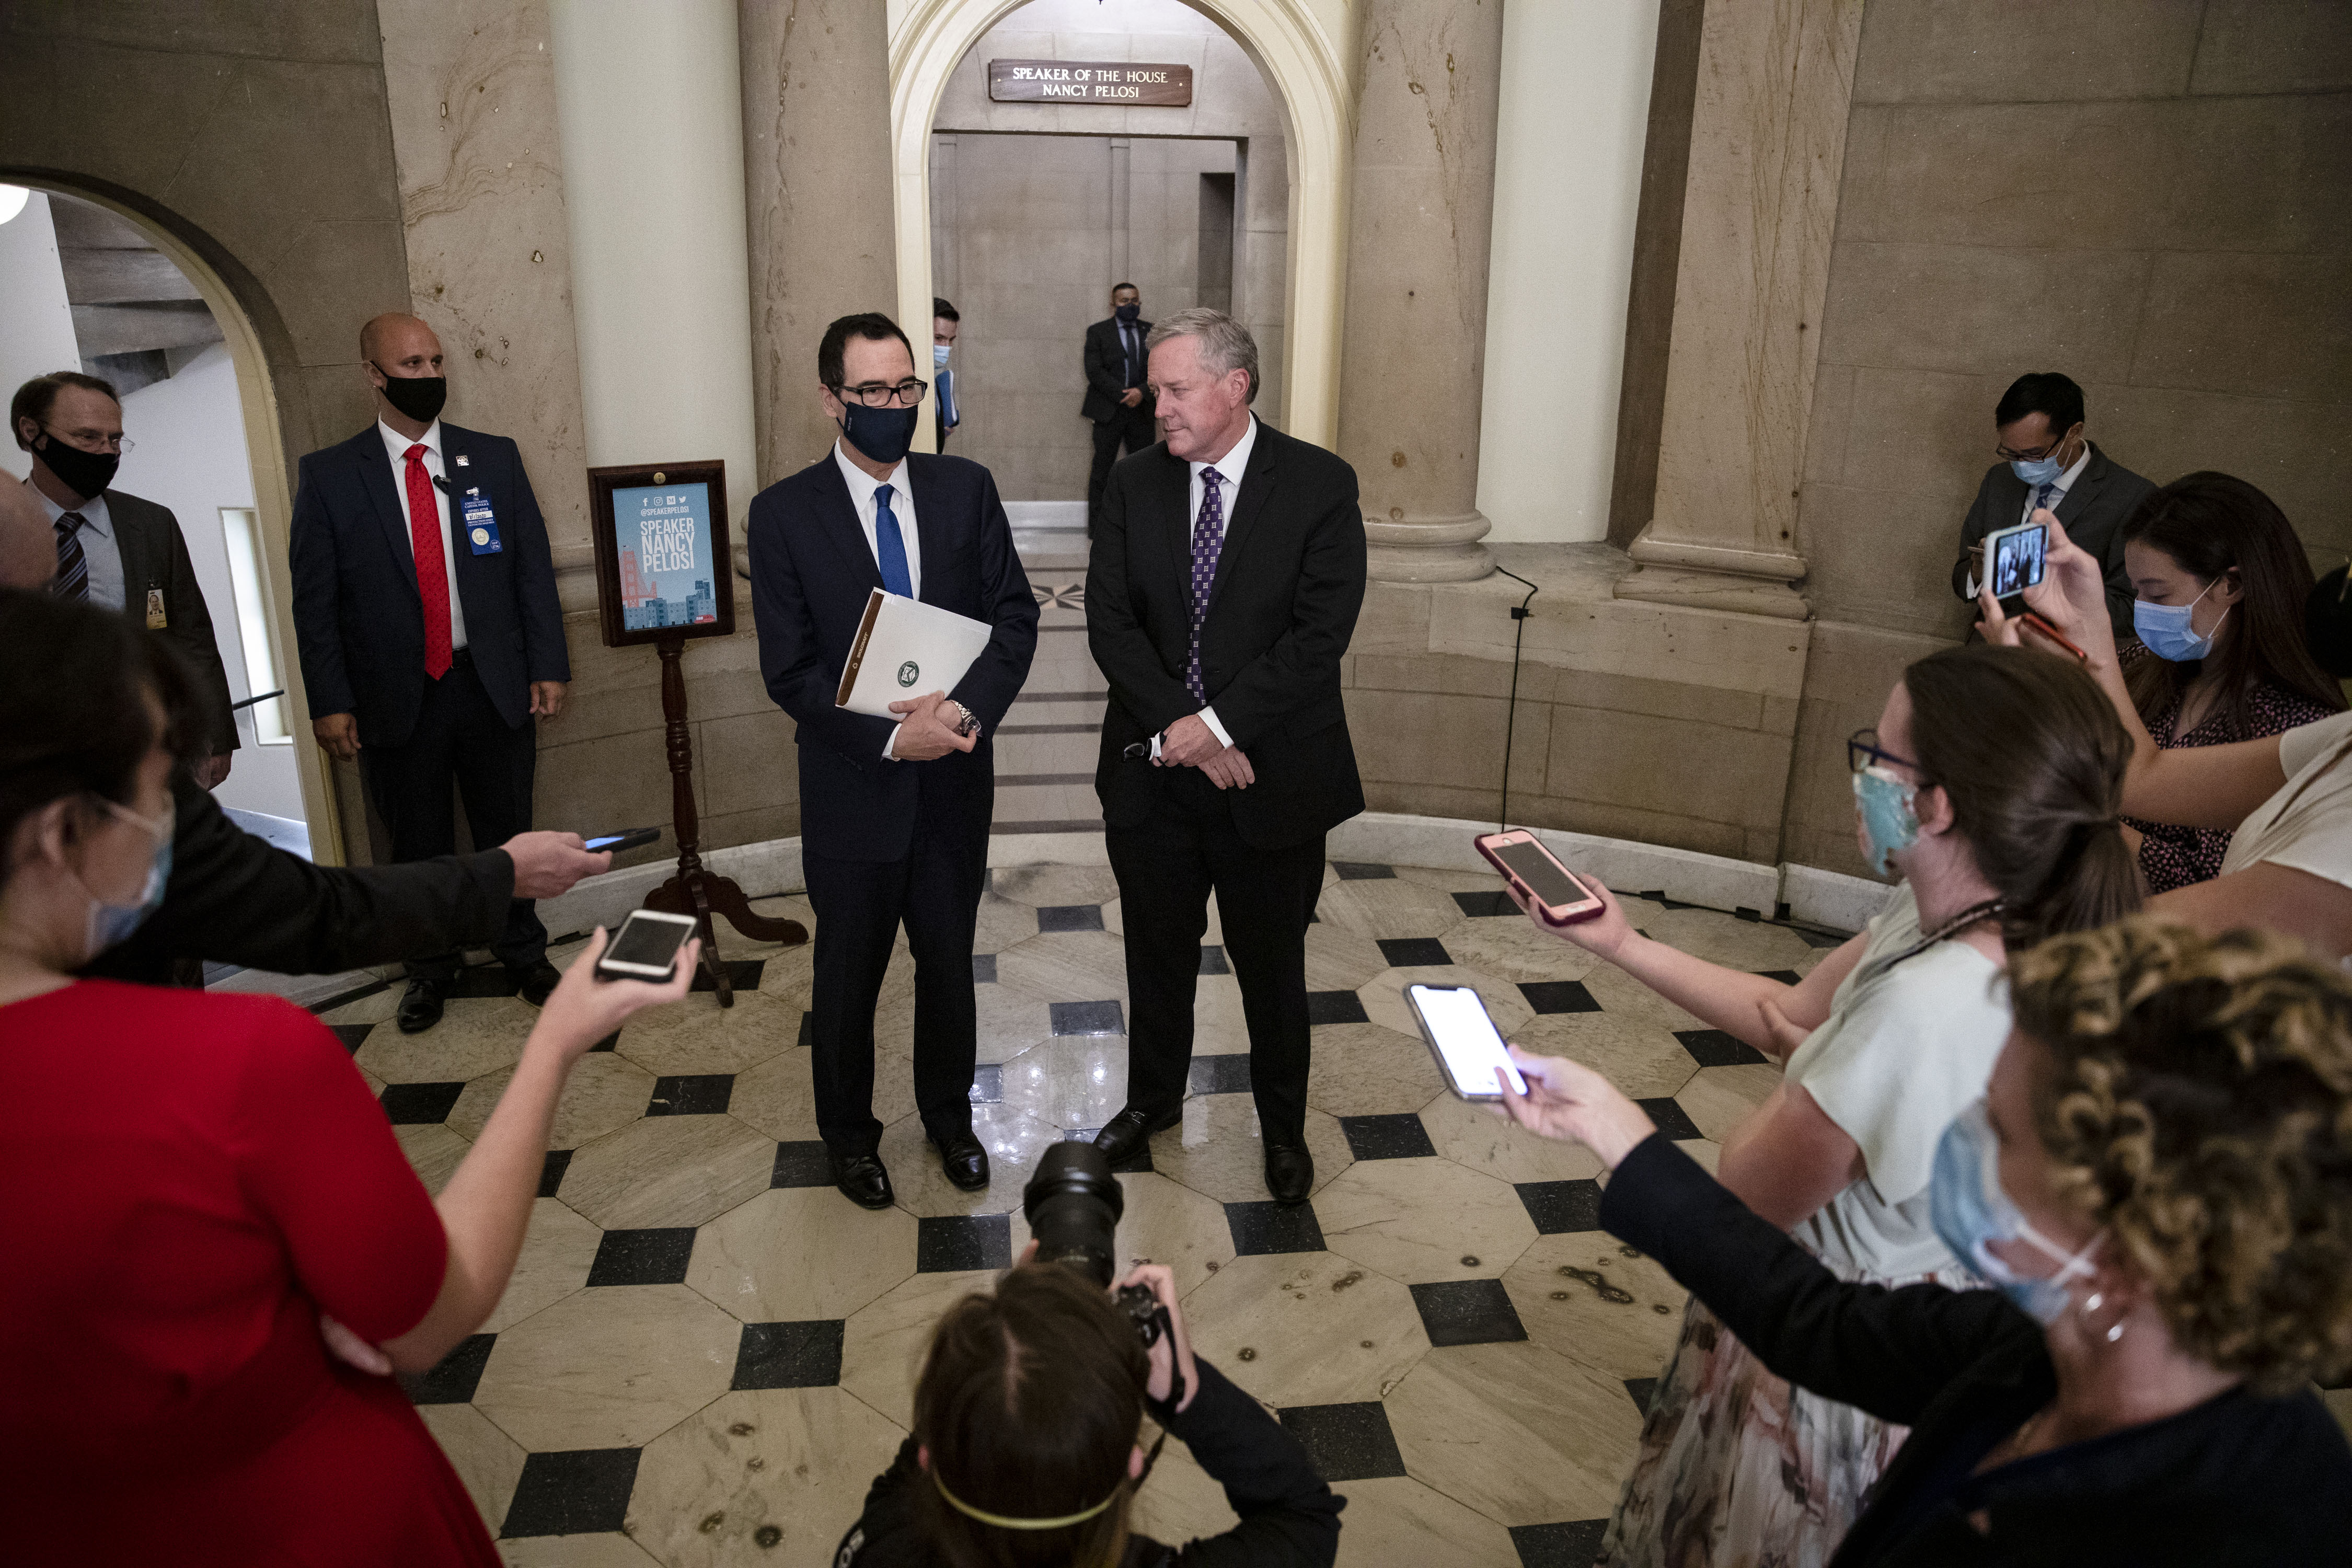 Treasury Secretary Steven Mnuchin and White House chief of staff Mark Meadows — center left and right, respectively — speak to reporters on July 30 in Washington, DC, after a meeting with Speaker Nancy Pelosi and Senate Democratic Leader Chuck Schumer.